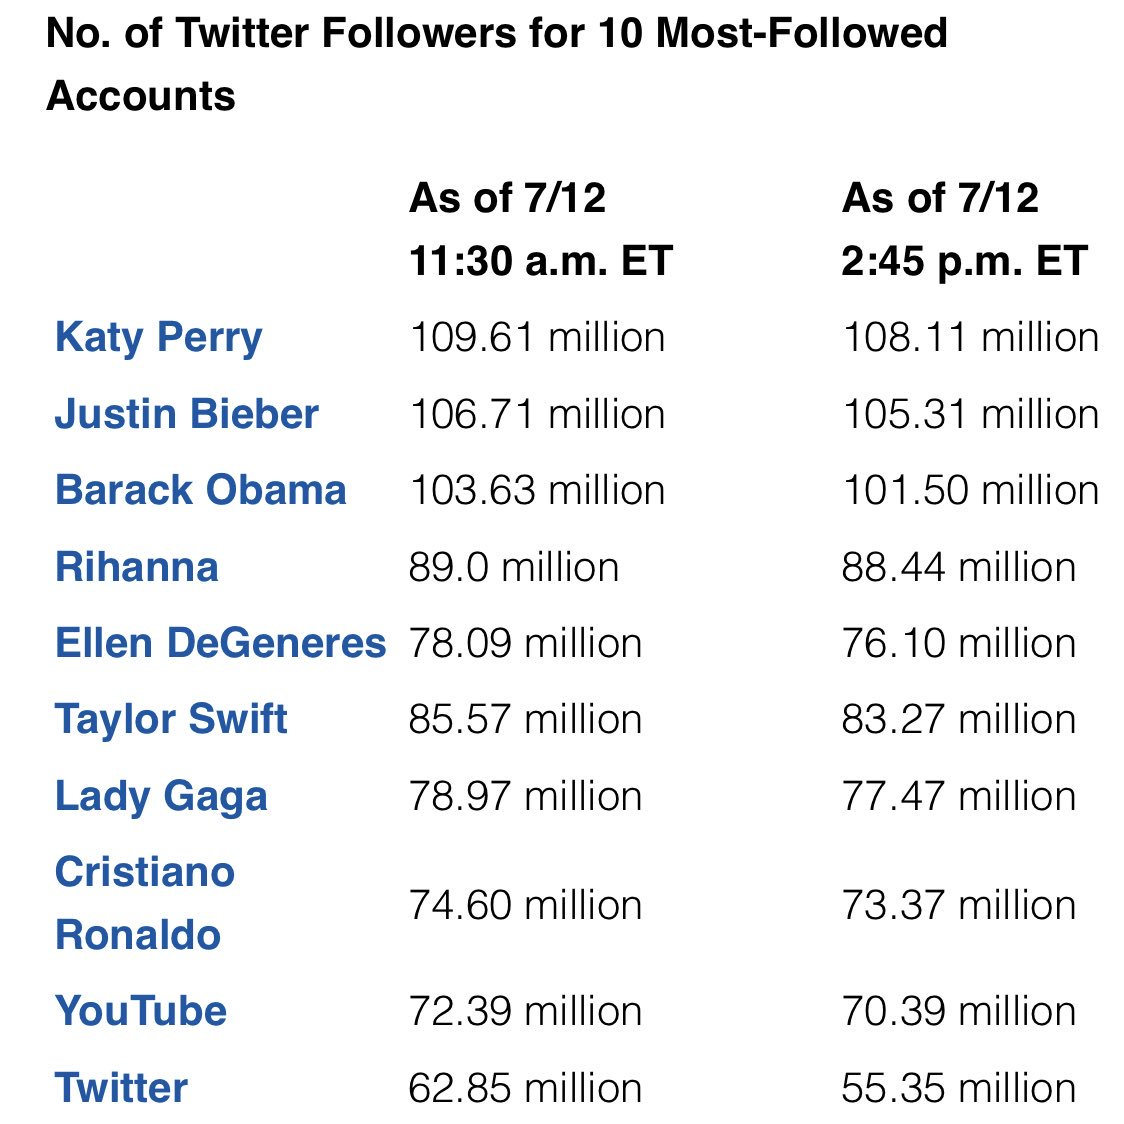 The big-name Twitter accounts who lost the most followers in fake account purge   Followers lost @twitter - 7.5 million!! @katyperry - 1.5 million @BarackObama - 2.1 million @taylorswift13 - 2.3 million @YouTube - 2 million @realDonaldTrump - 100,000   https://t.co/9z7tv23Ouf